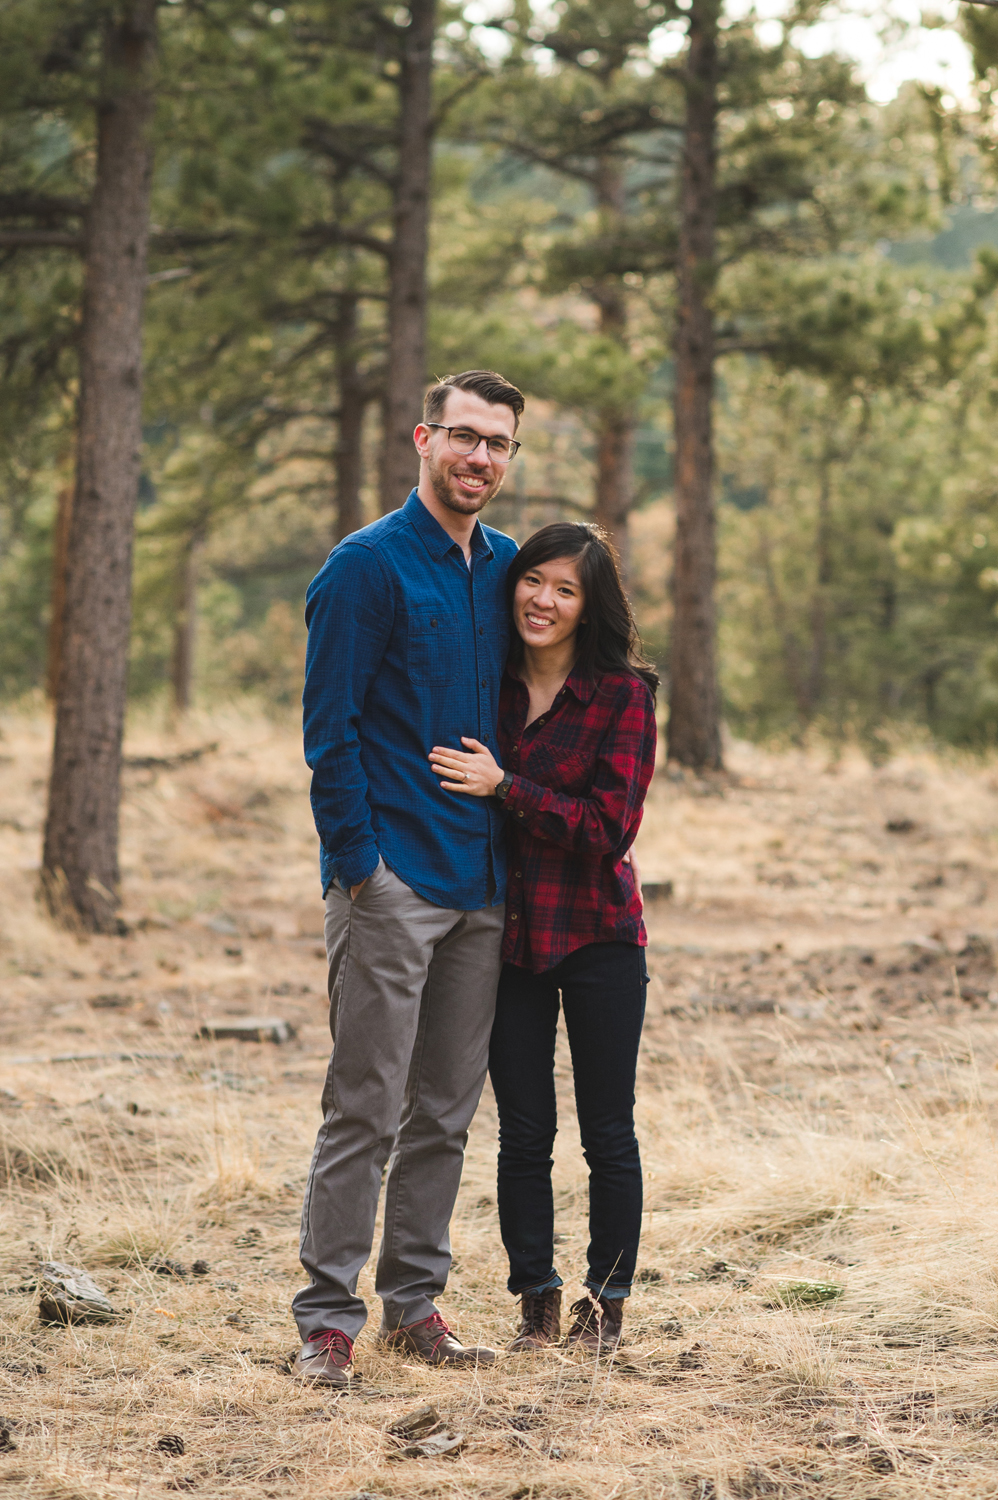 TiffanyandMark_Engaged_0703_squarespace.jpg